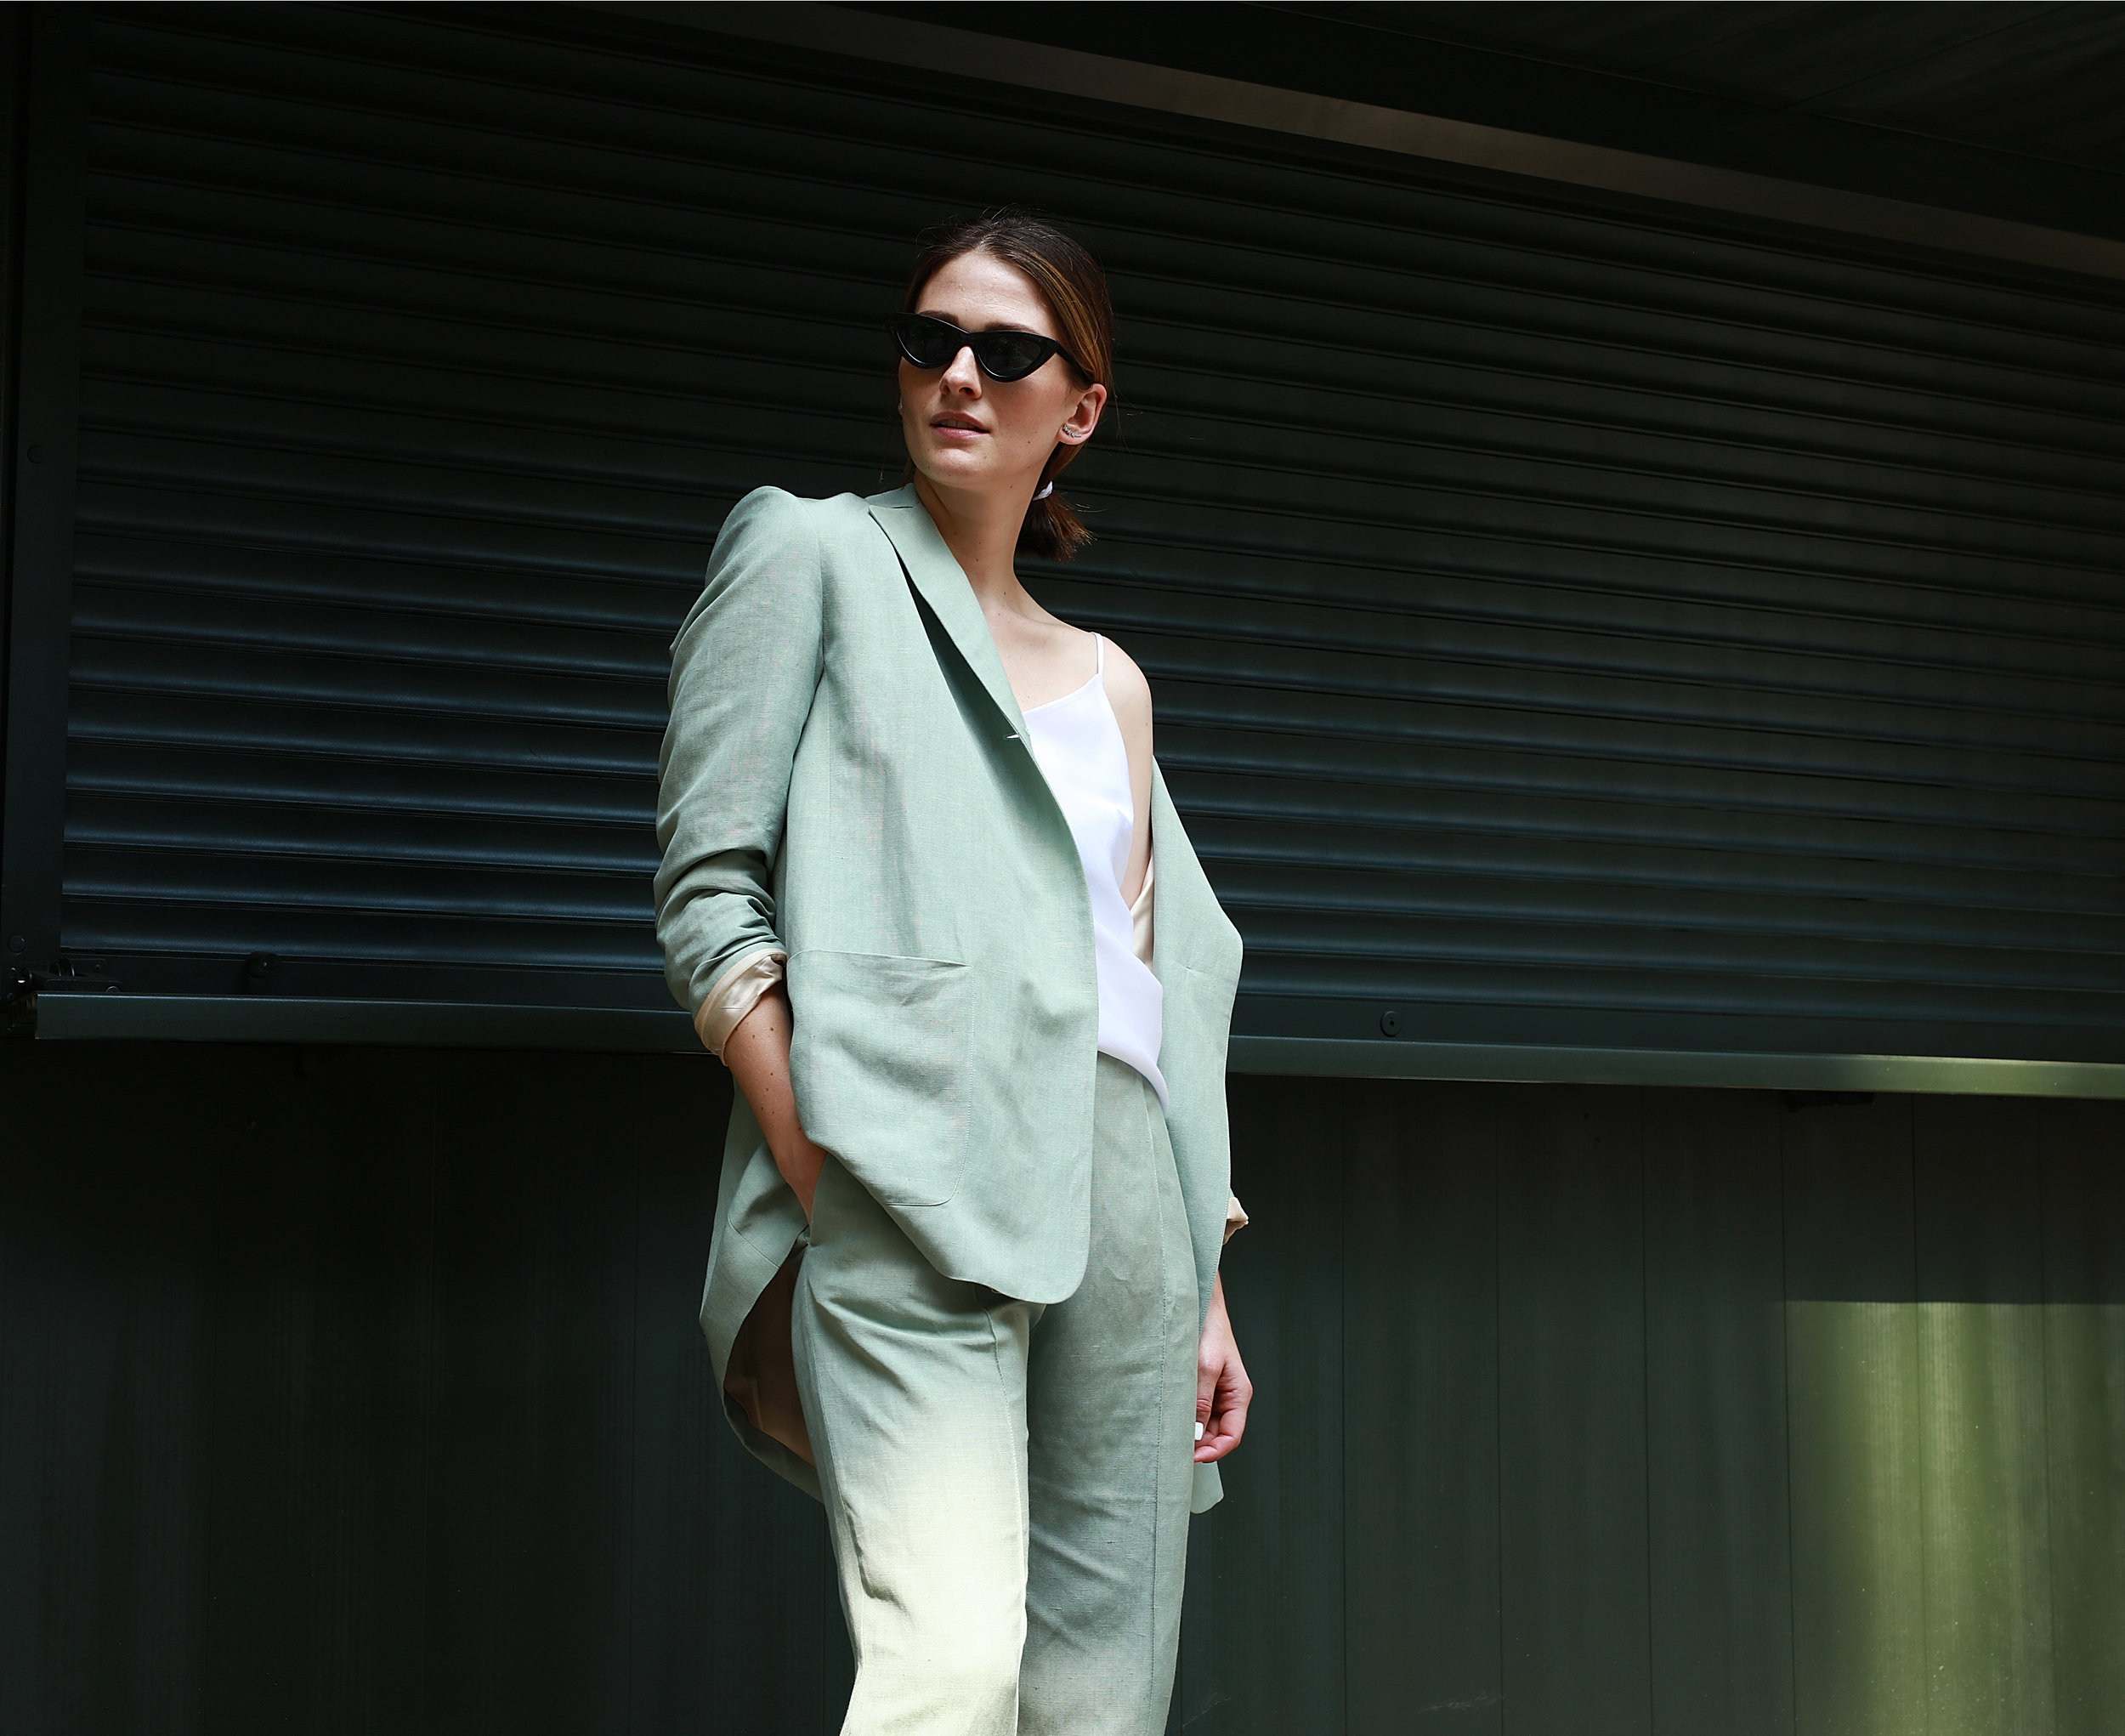 annaporter-linen-jacket-trousers-outfit-fashion-blogger